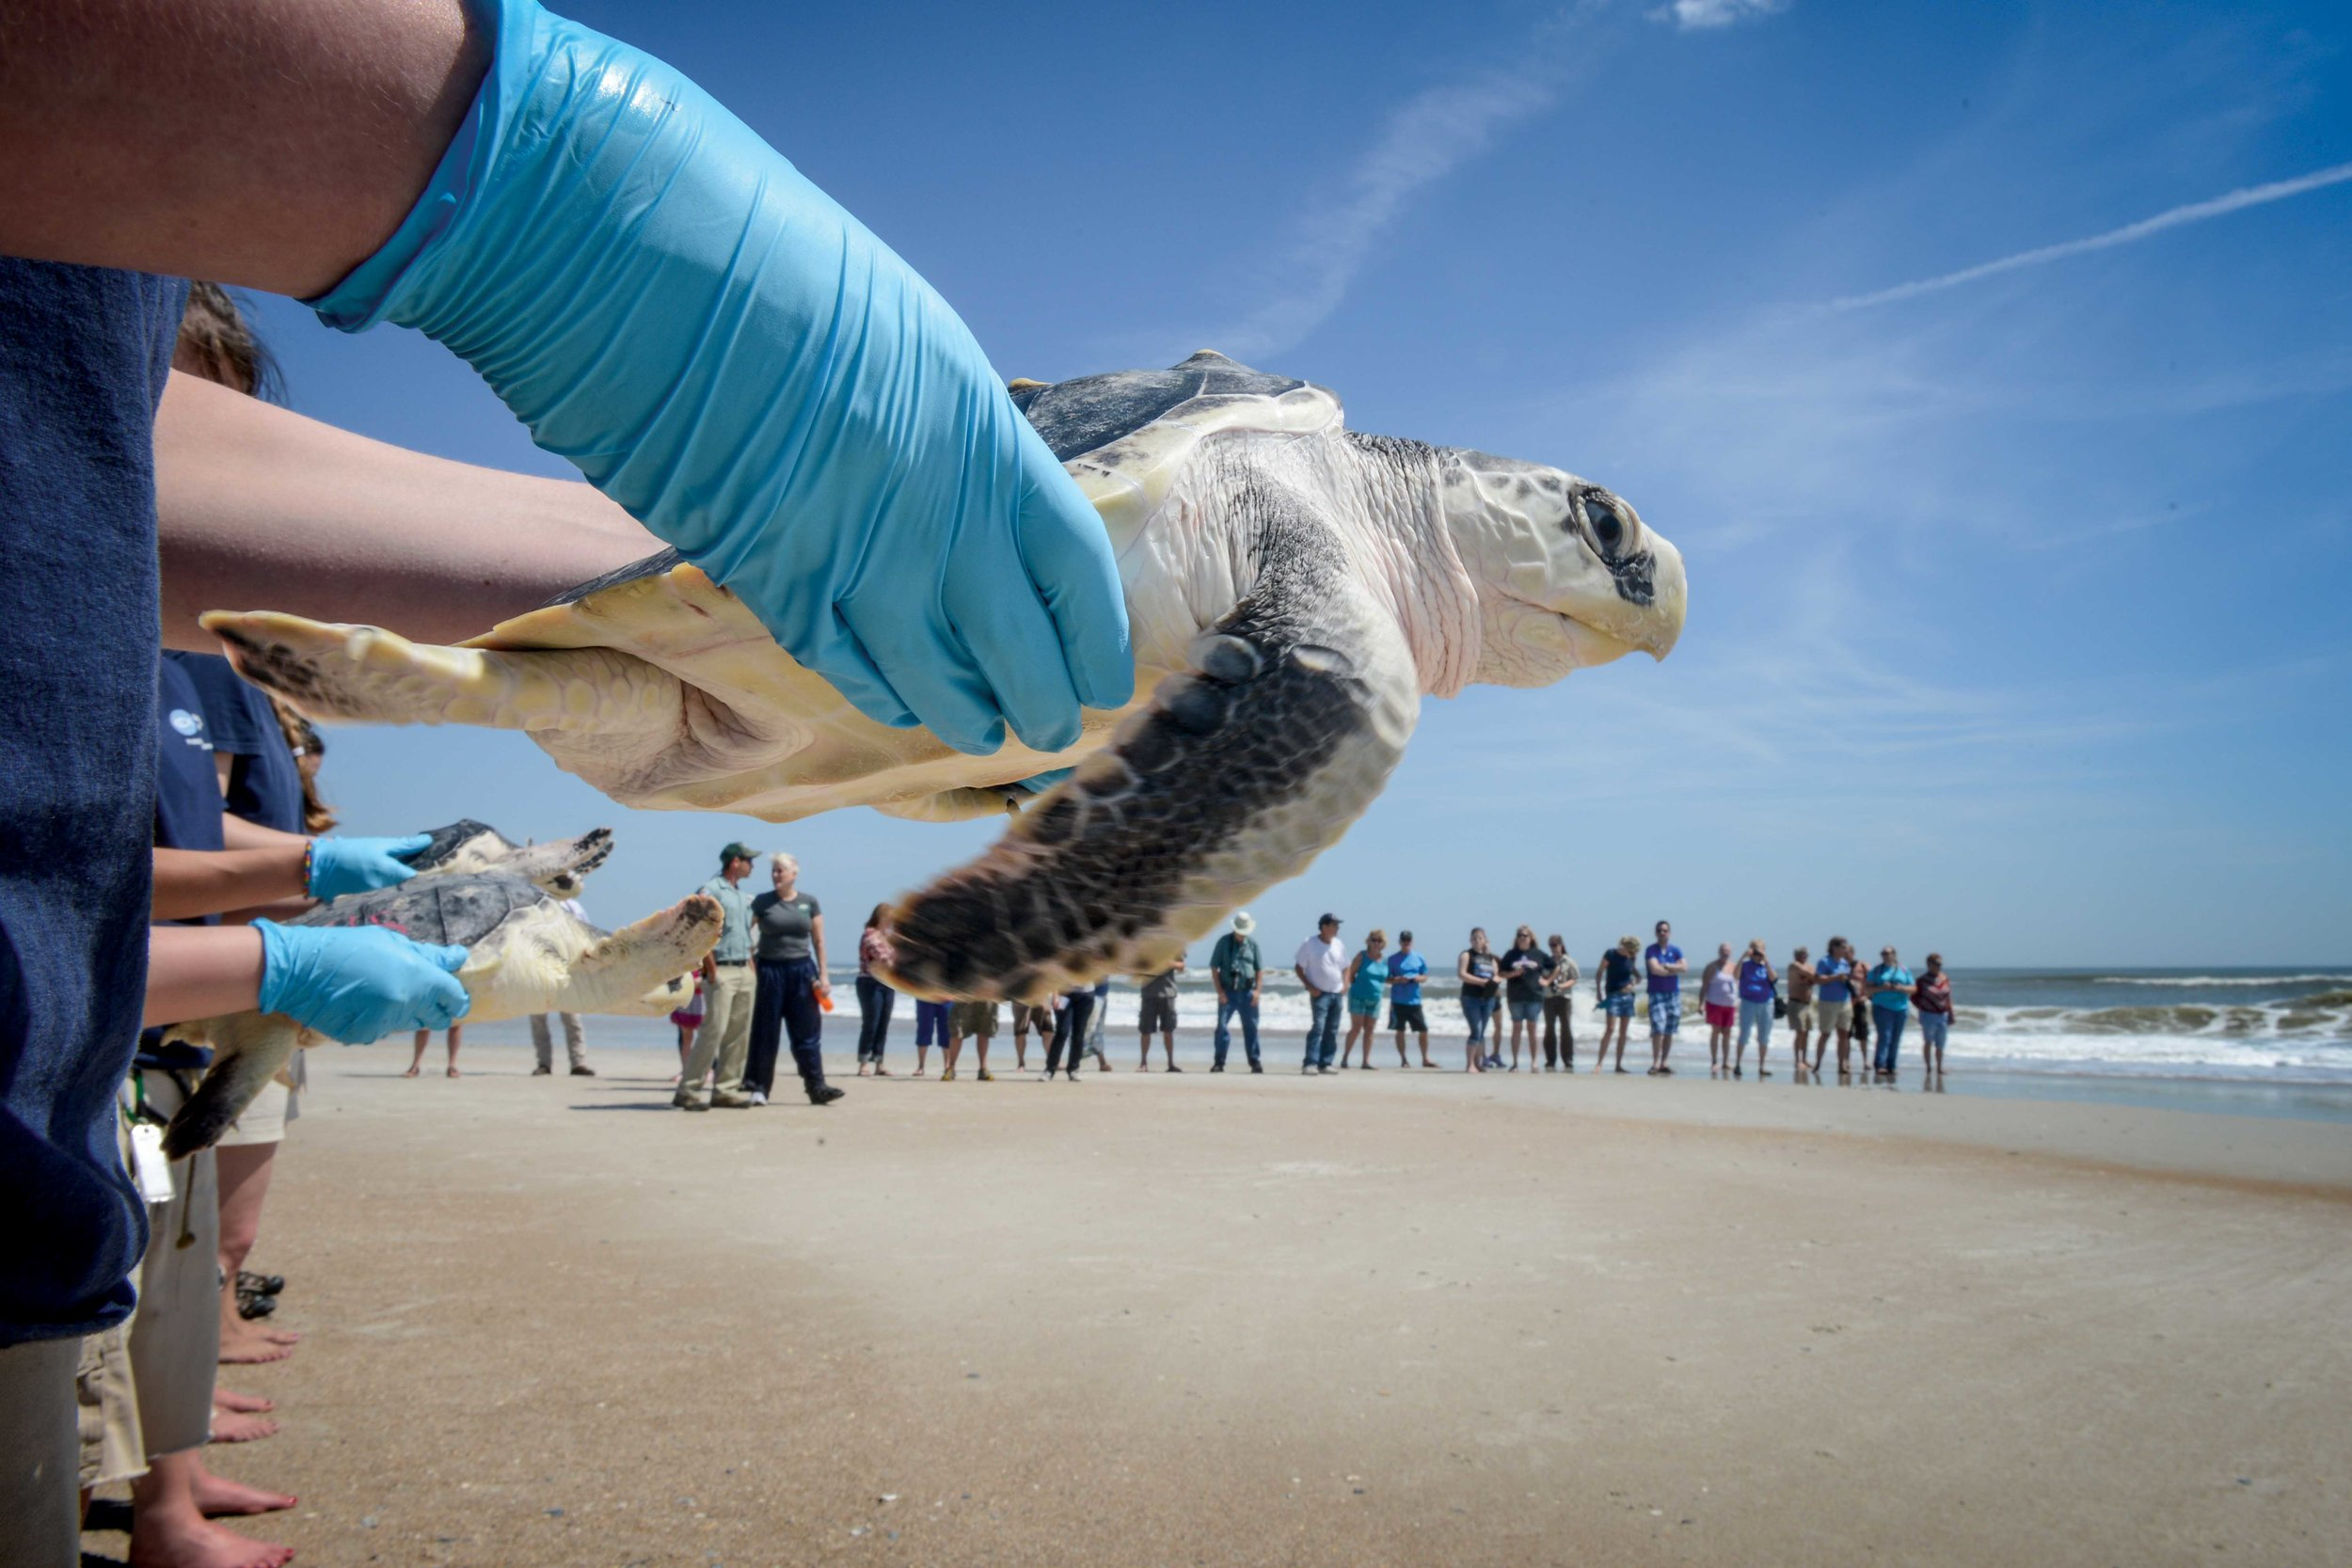 In 2014, members of the New England Aquarium Marine Animal Rescue Team release 31 rescued and rehabilitated sea turtles at Little Talbot Island in Florida, U.S.A. © ESTHER HORVATH